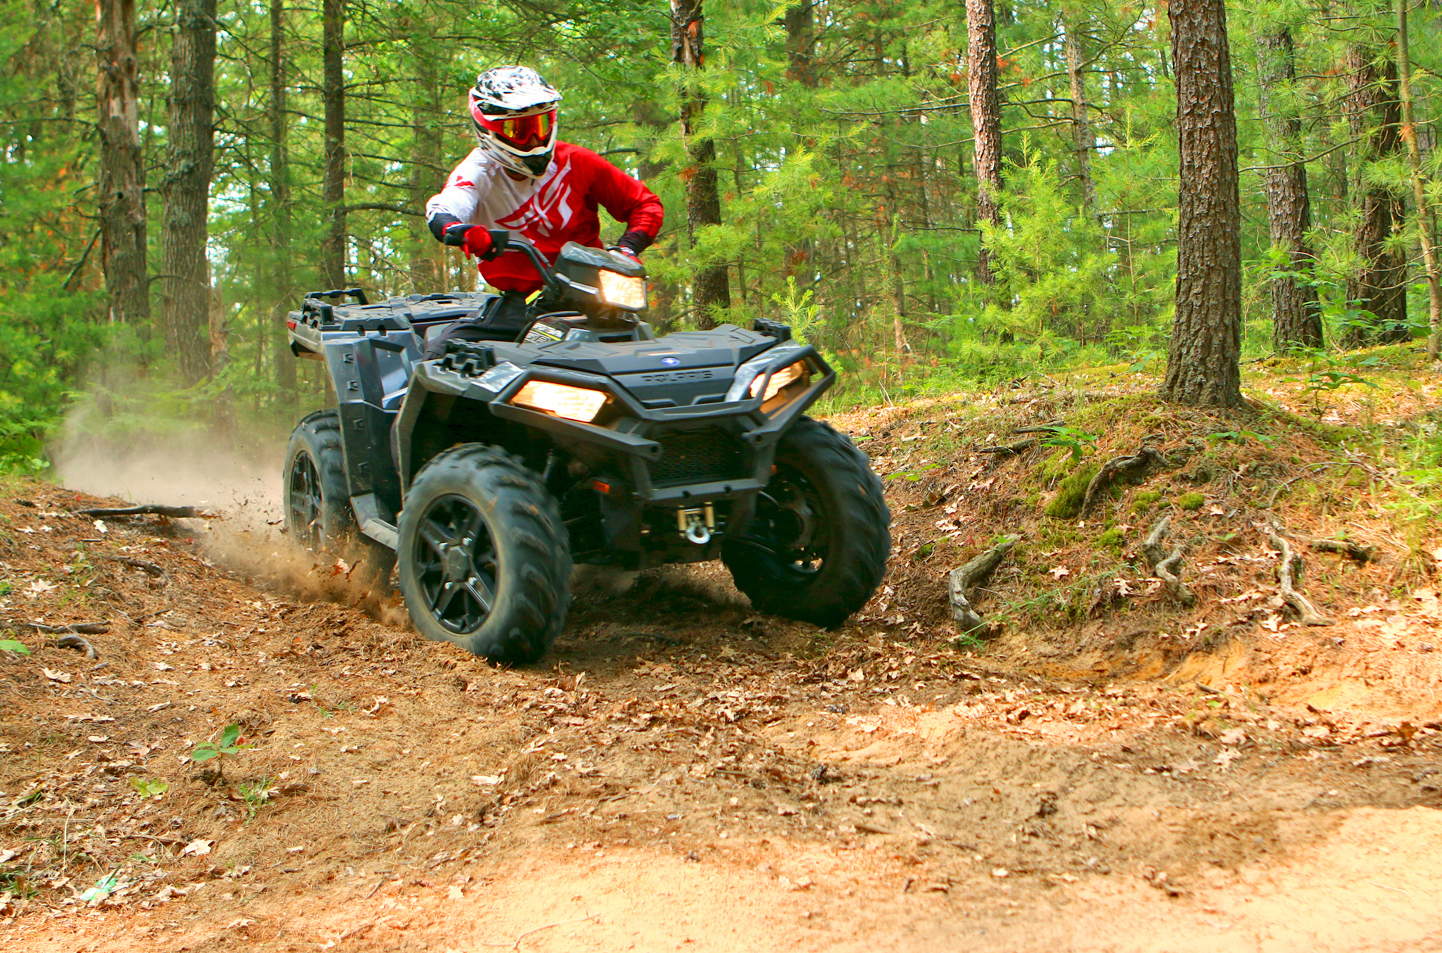 polaris-sportsman-850-black-trails-b.jpg